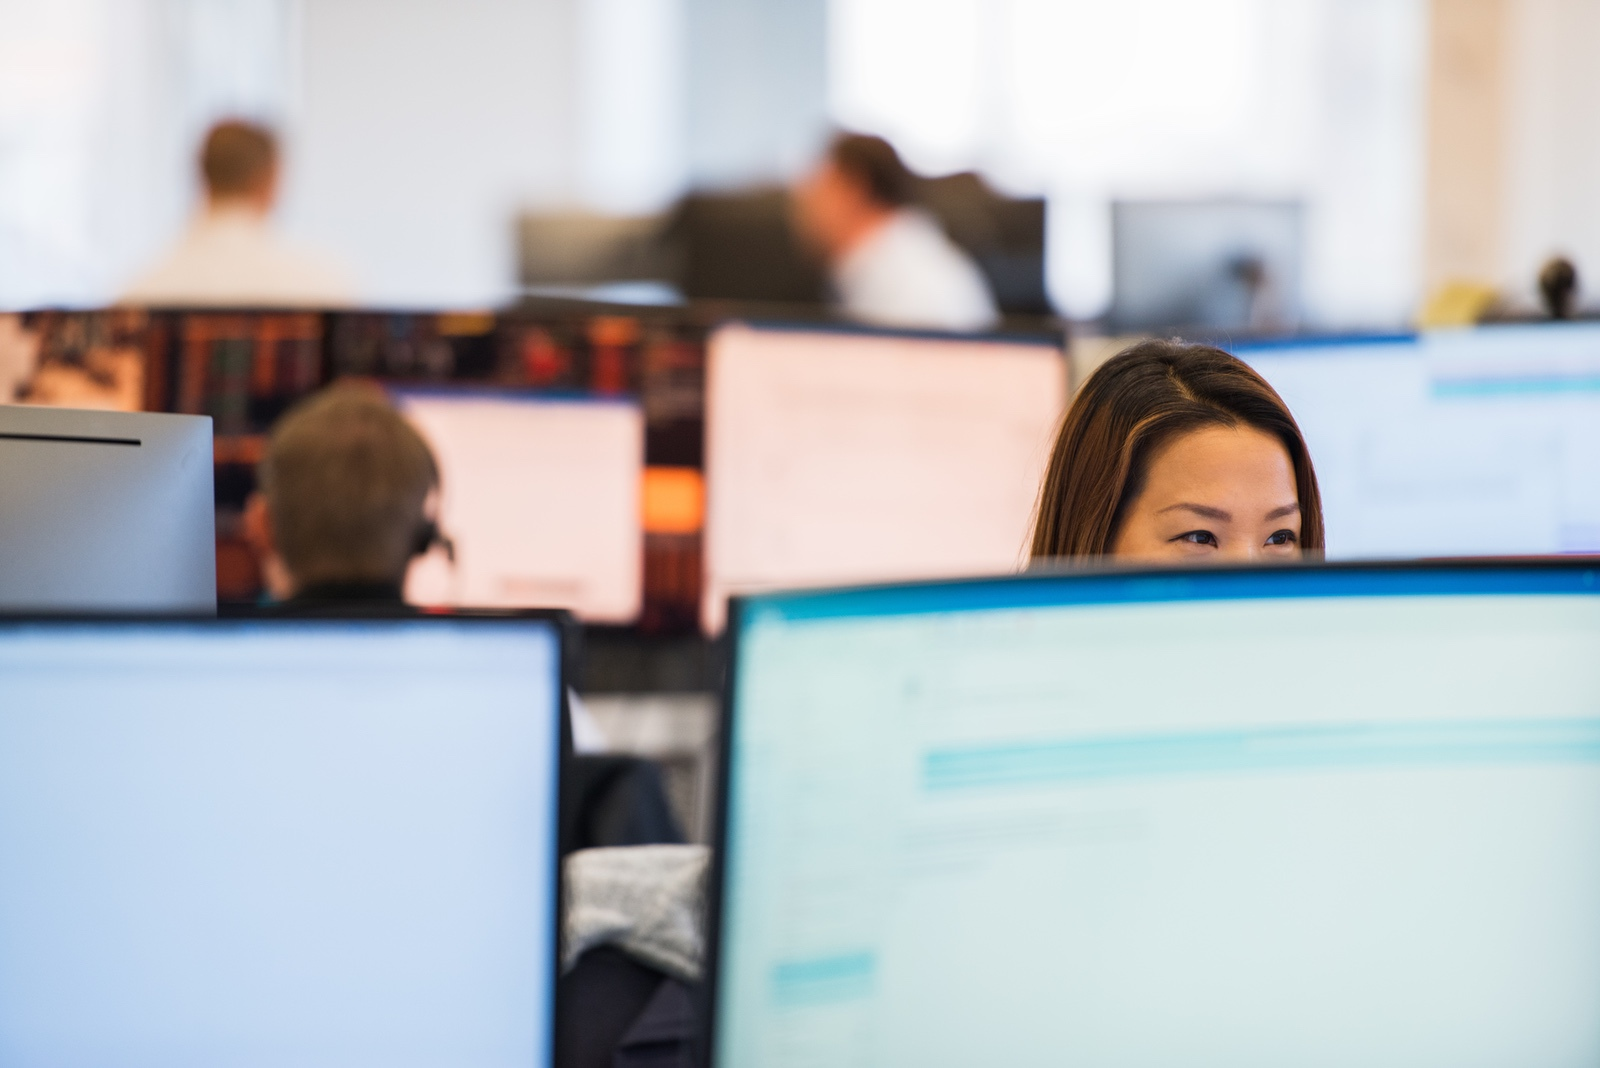 Liquidnet employee sitting at workstation with bottom half of face concealed by row of monitors